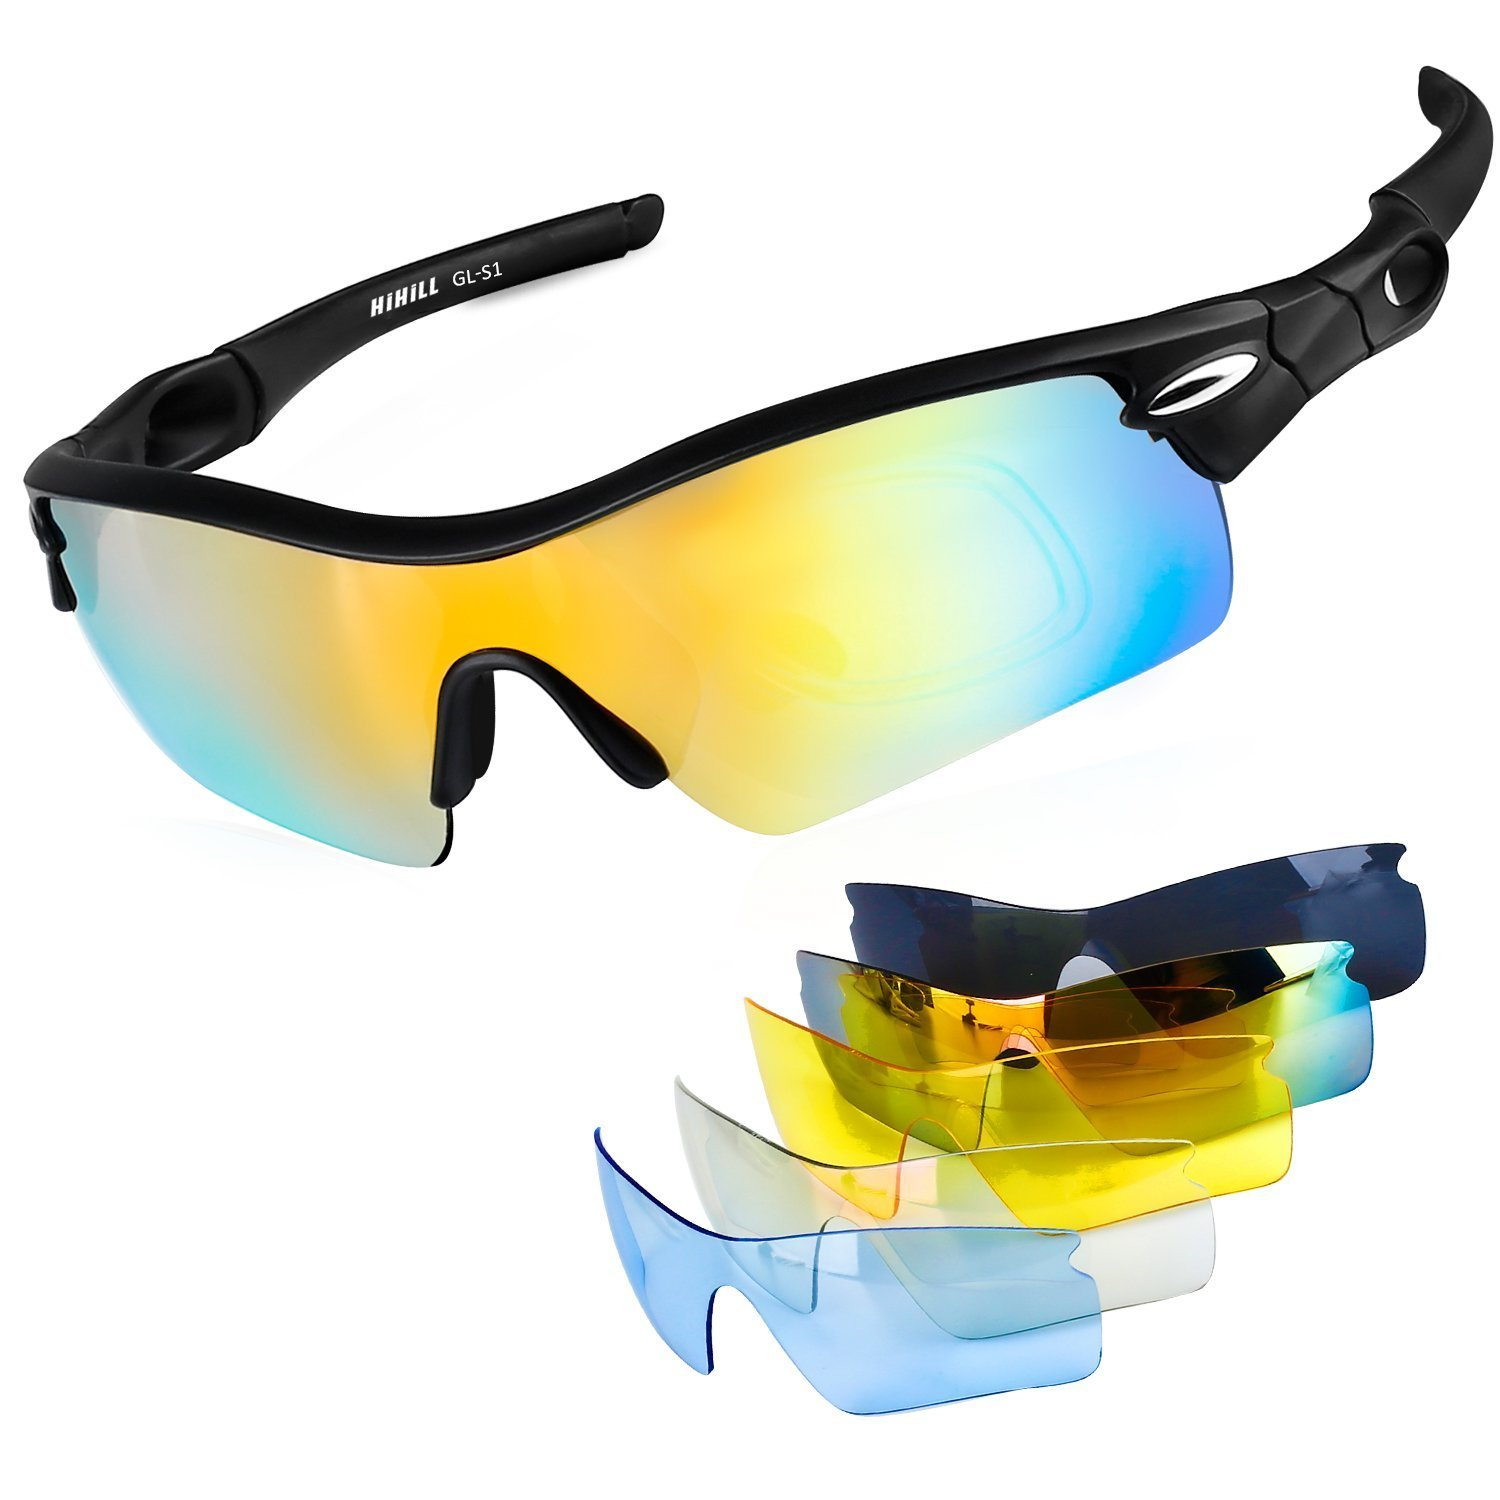 eb6678697c Polarized Sports Sunglasses Cycling Glasses for Women Men Baseball Running  Golf Fishing with 5 Interchangeable Lenses UV400 Protection TR90 Durable  Frame